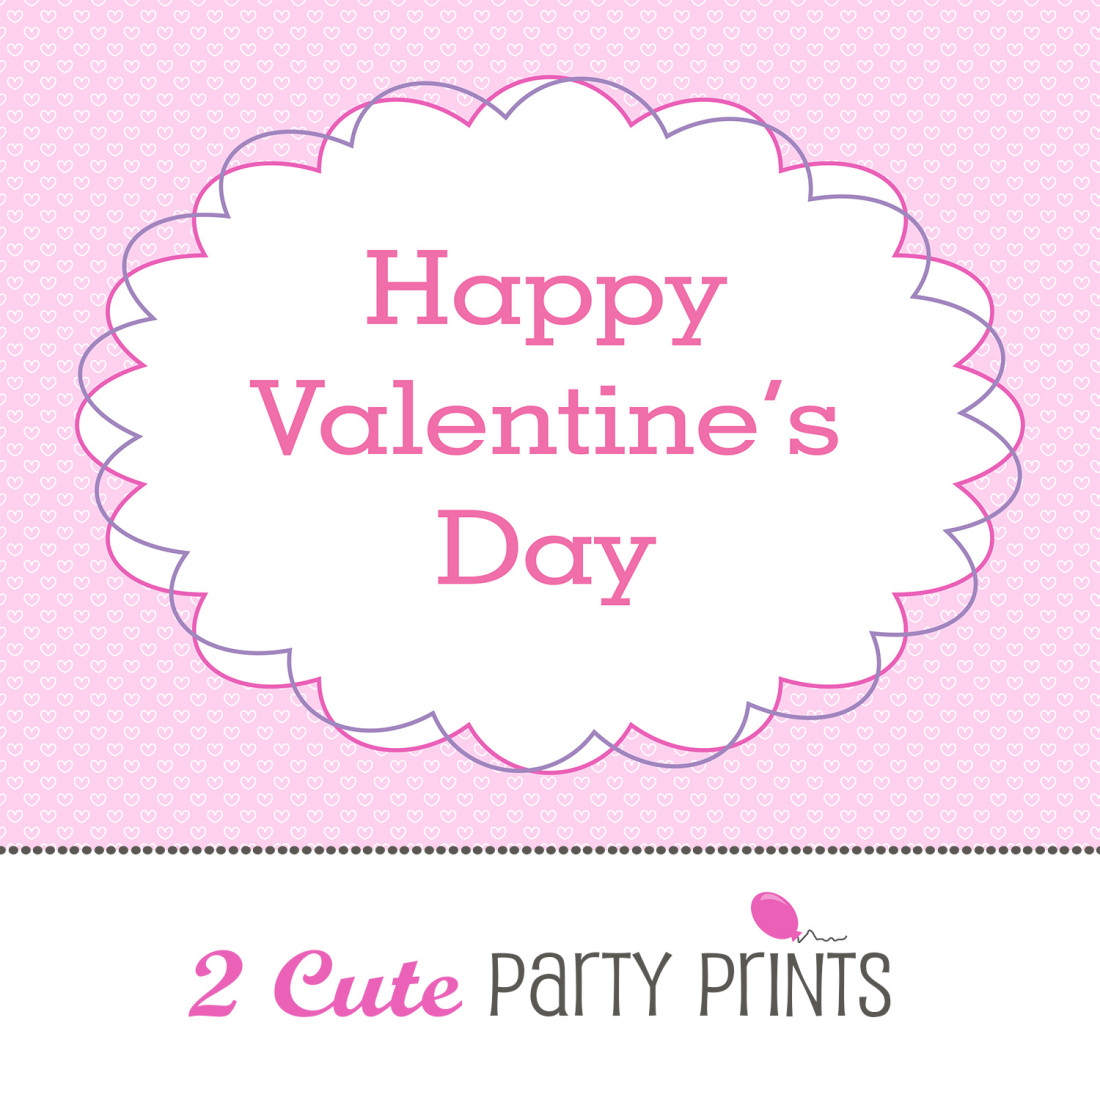 6 Images of Happy Valentine's Day Printable Sign